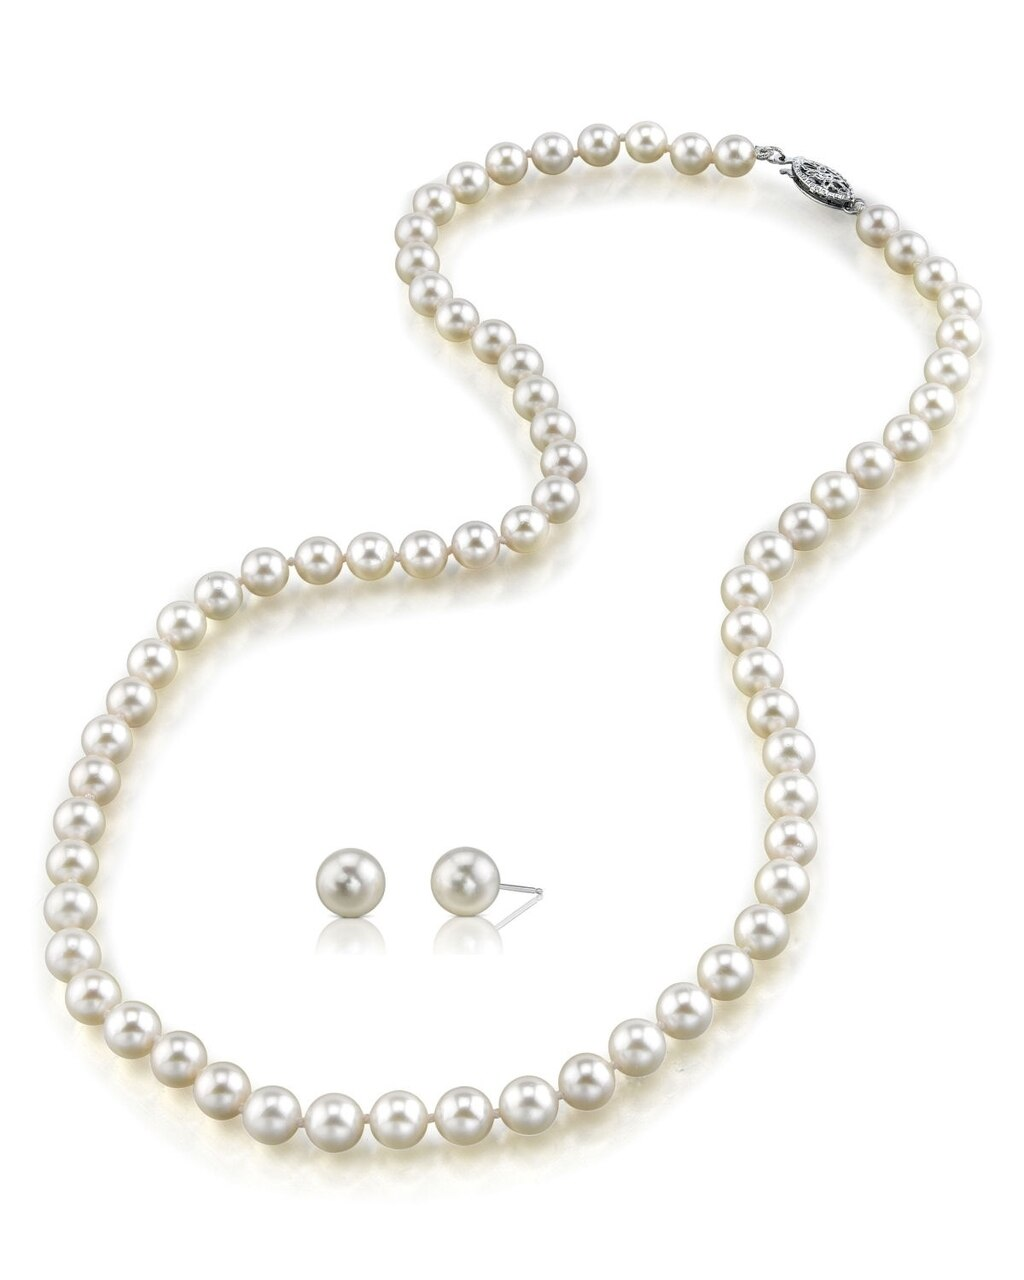 This classic necklace and earring set features 6.0-6.5mm Japanese Akoya pearls